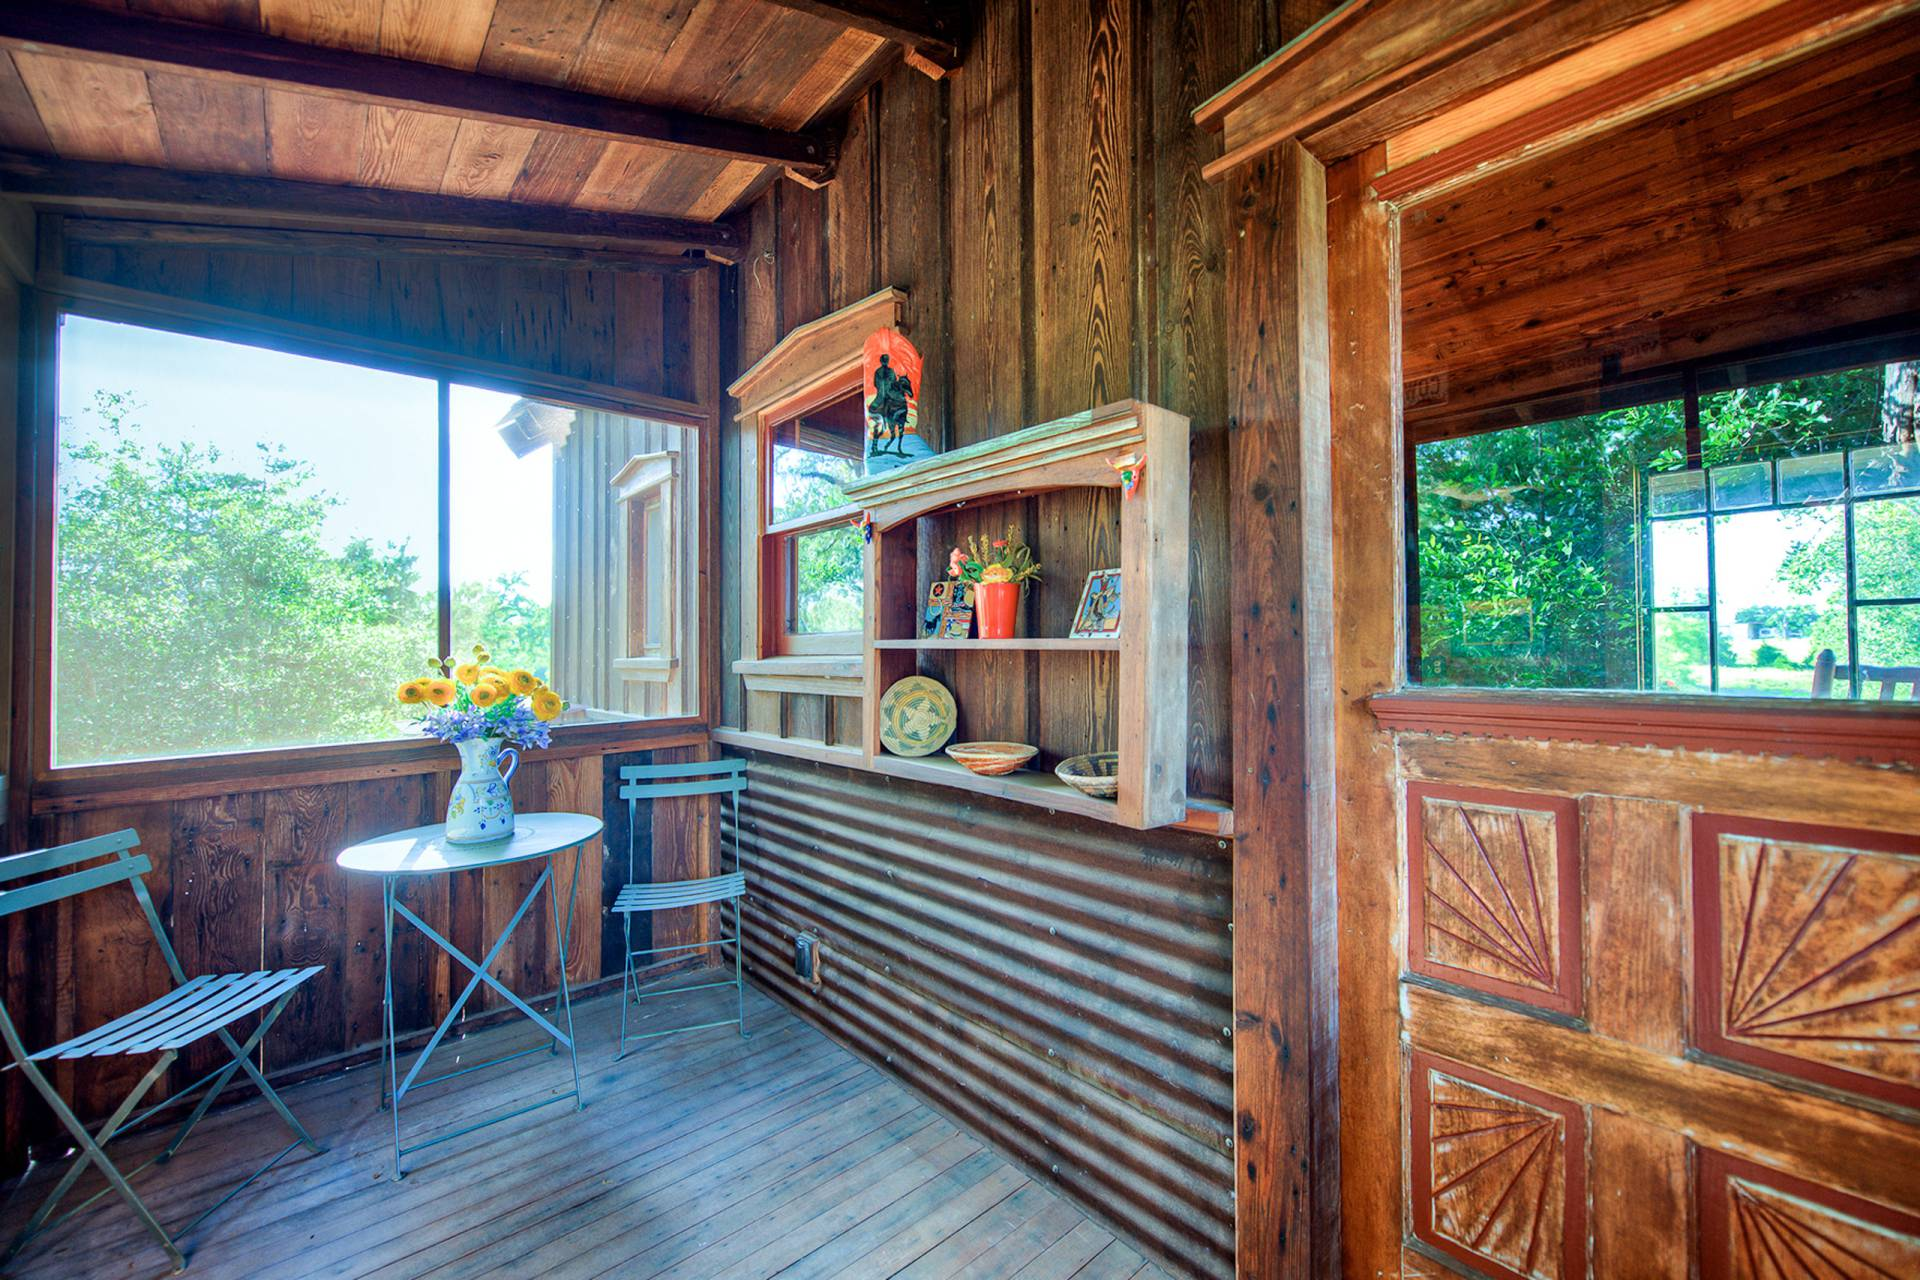 gallery the cowboy cabin tiny texas houses small house bliss published february 29 2016 at 1920 1280 in the cowboy